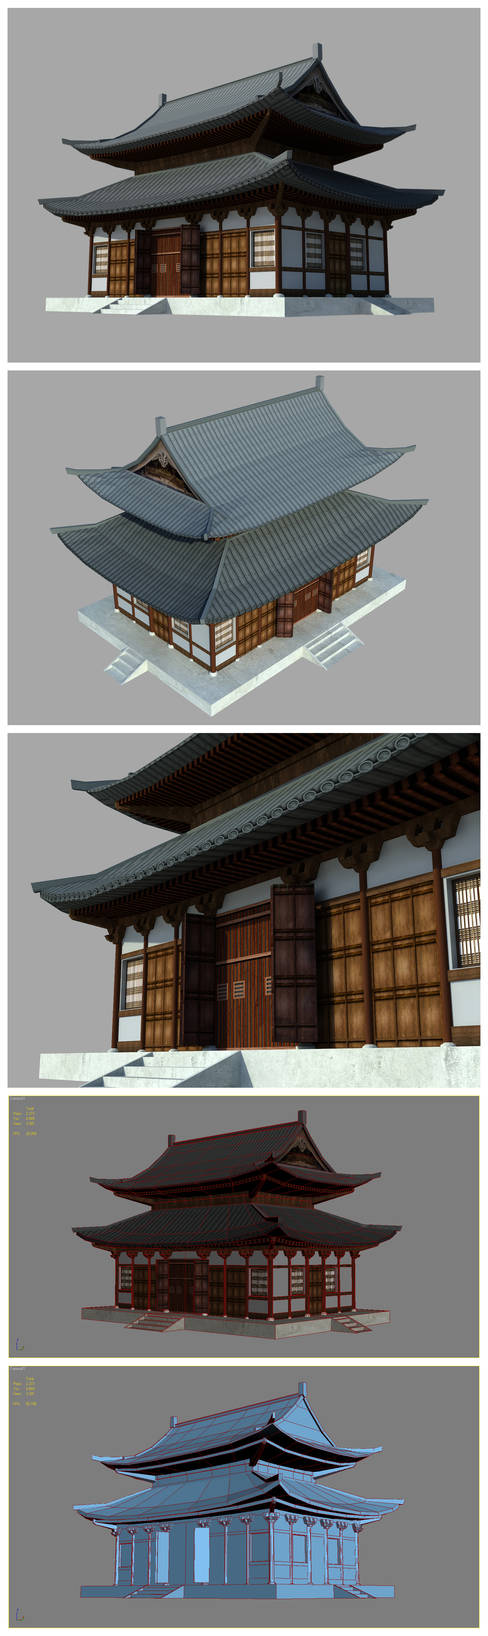 a Japanese temple - gameready